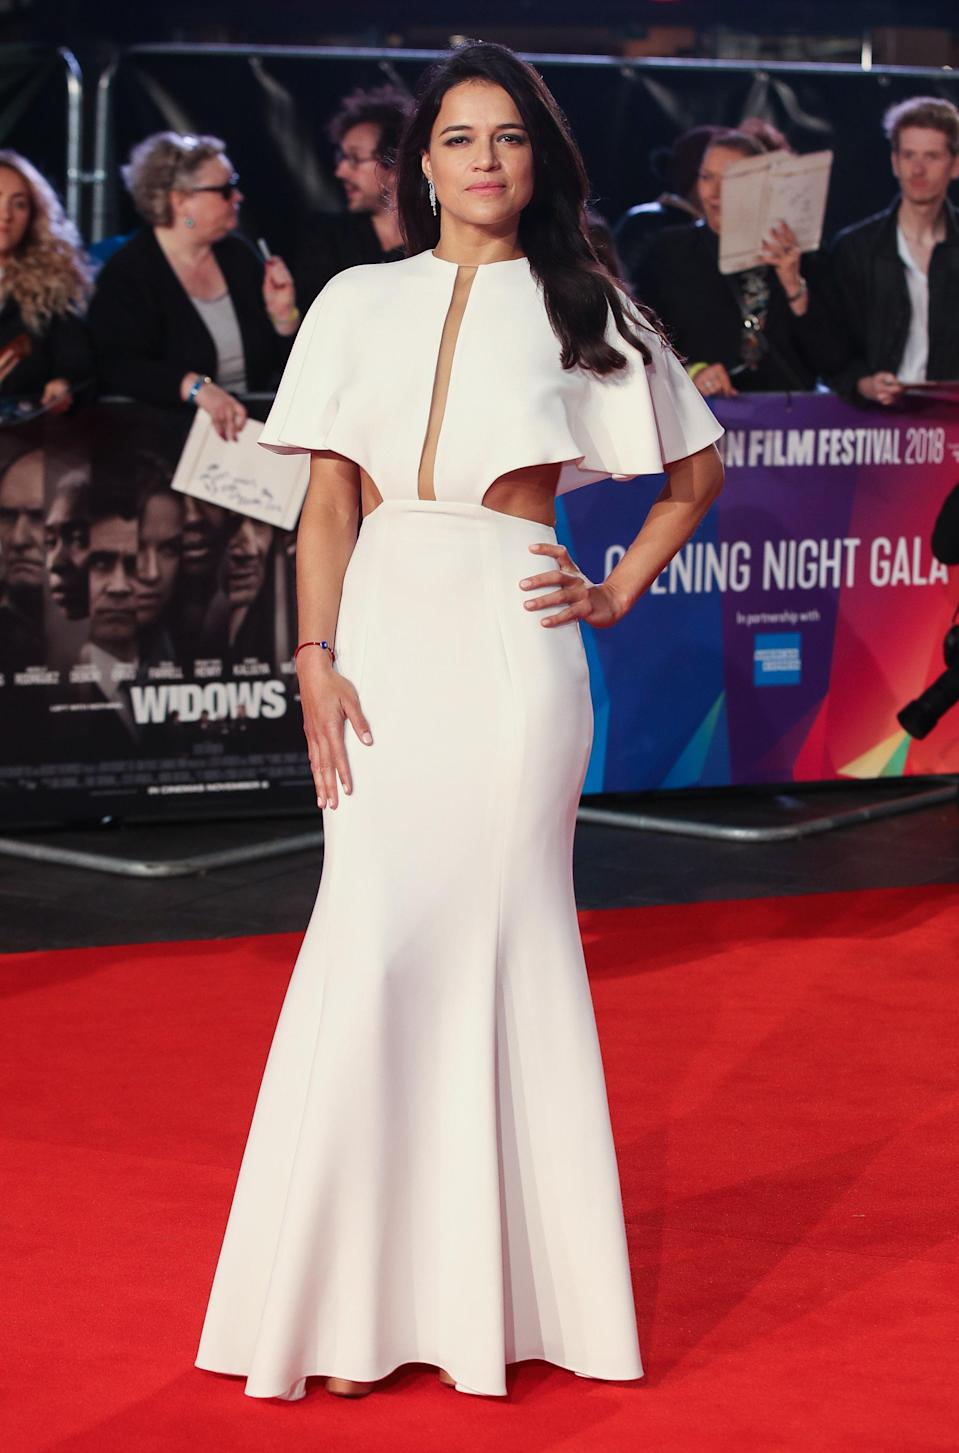 """<p>The 'Fast and Furious' star attended the European premiere of """"Widows"""" in London, wearing a Julianna Bass dress on October 10. <em>[Photo: Getty]</em> </p>"""